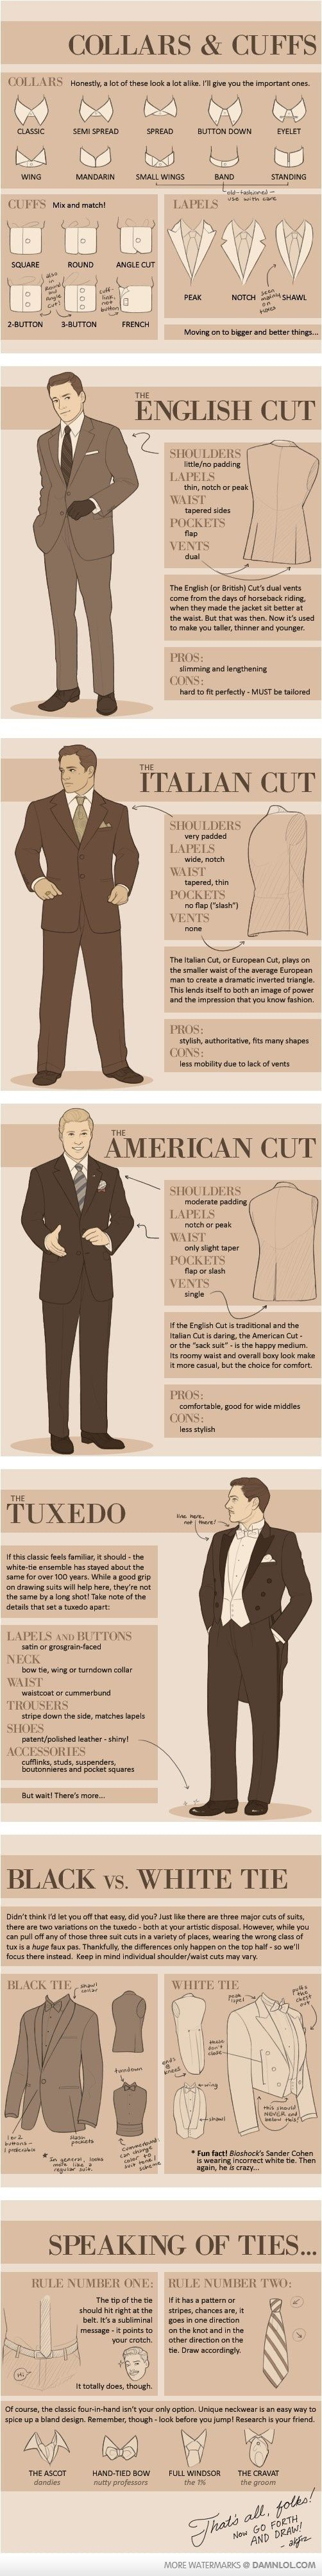 mens suit styles explained. good to know